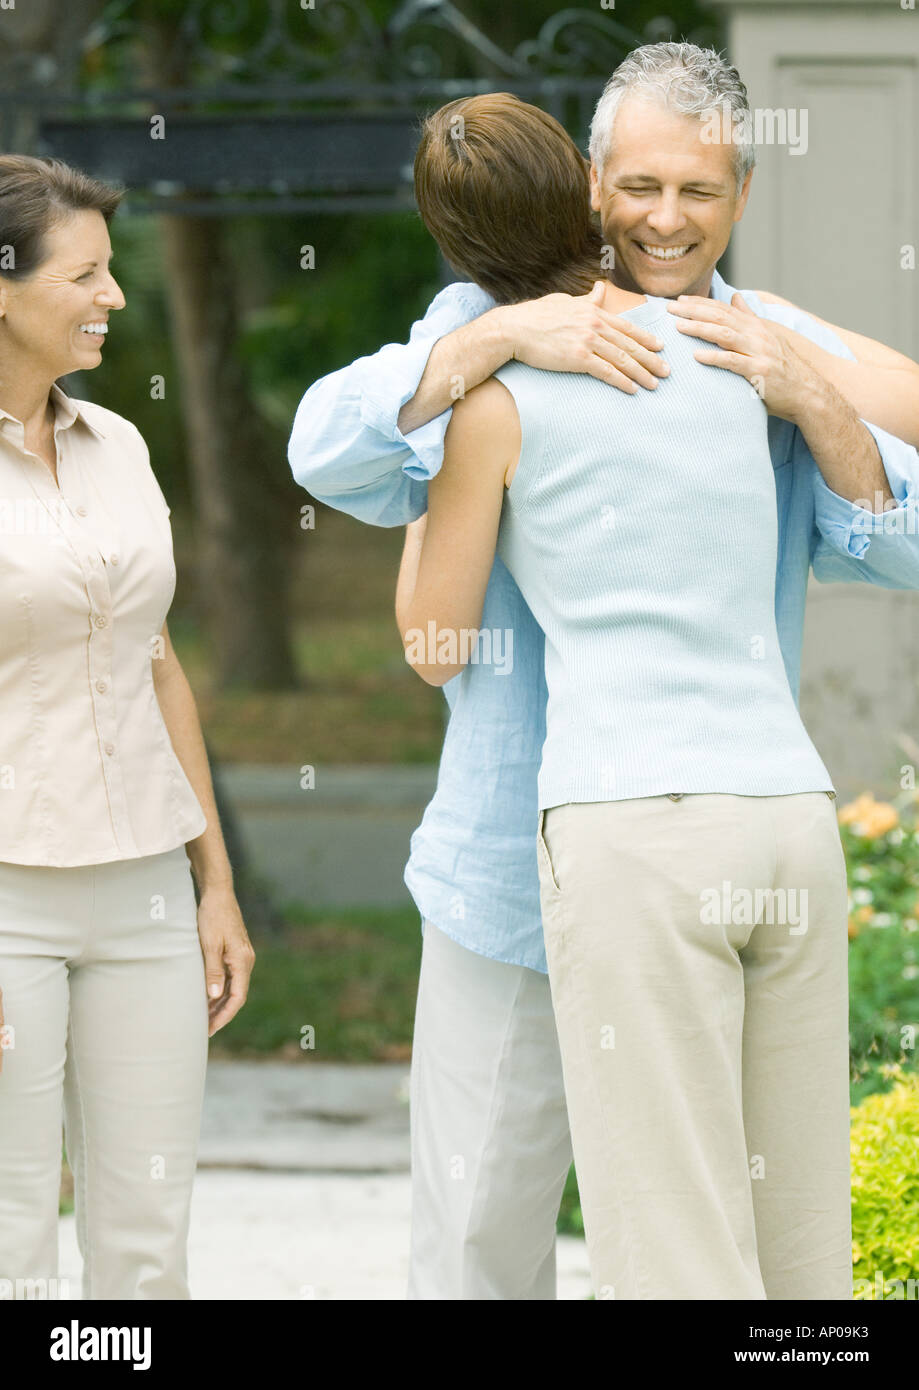 Woman hugging man as second woman watches smiling - Stock Image